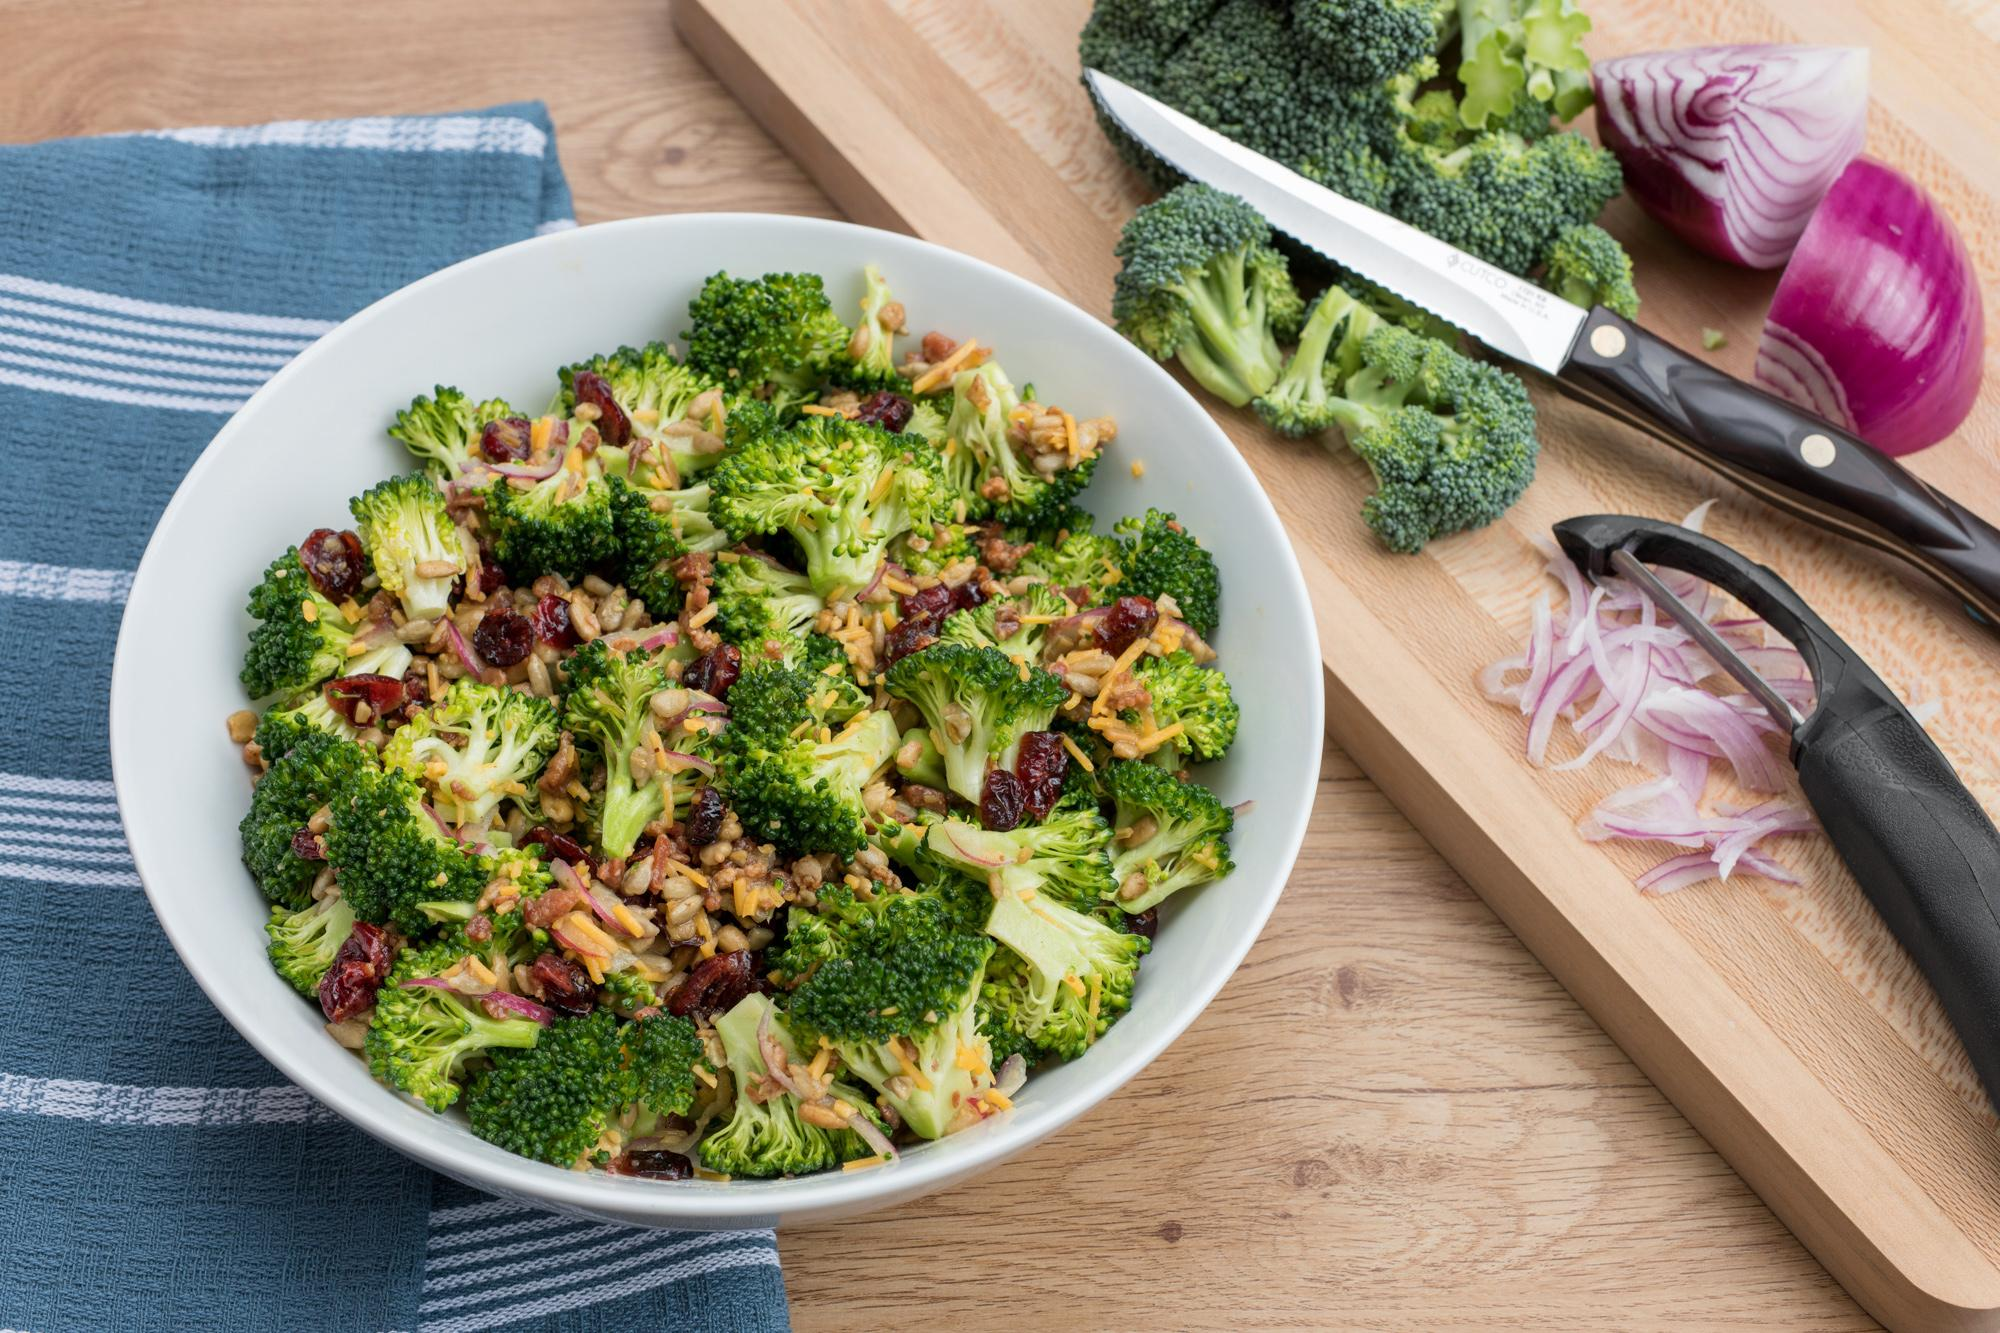 Easy Broccoli Salad With Dijon Vinaigrette